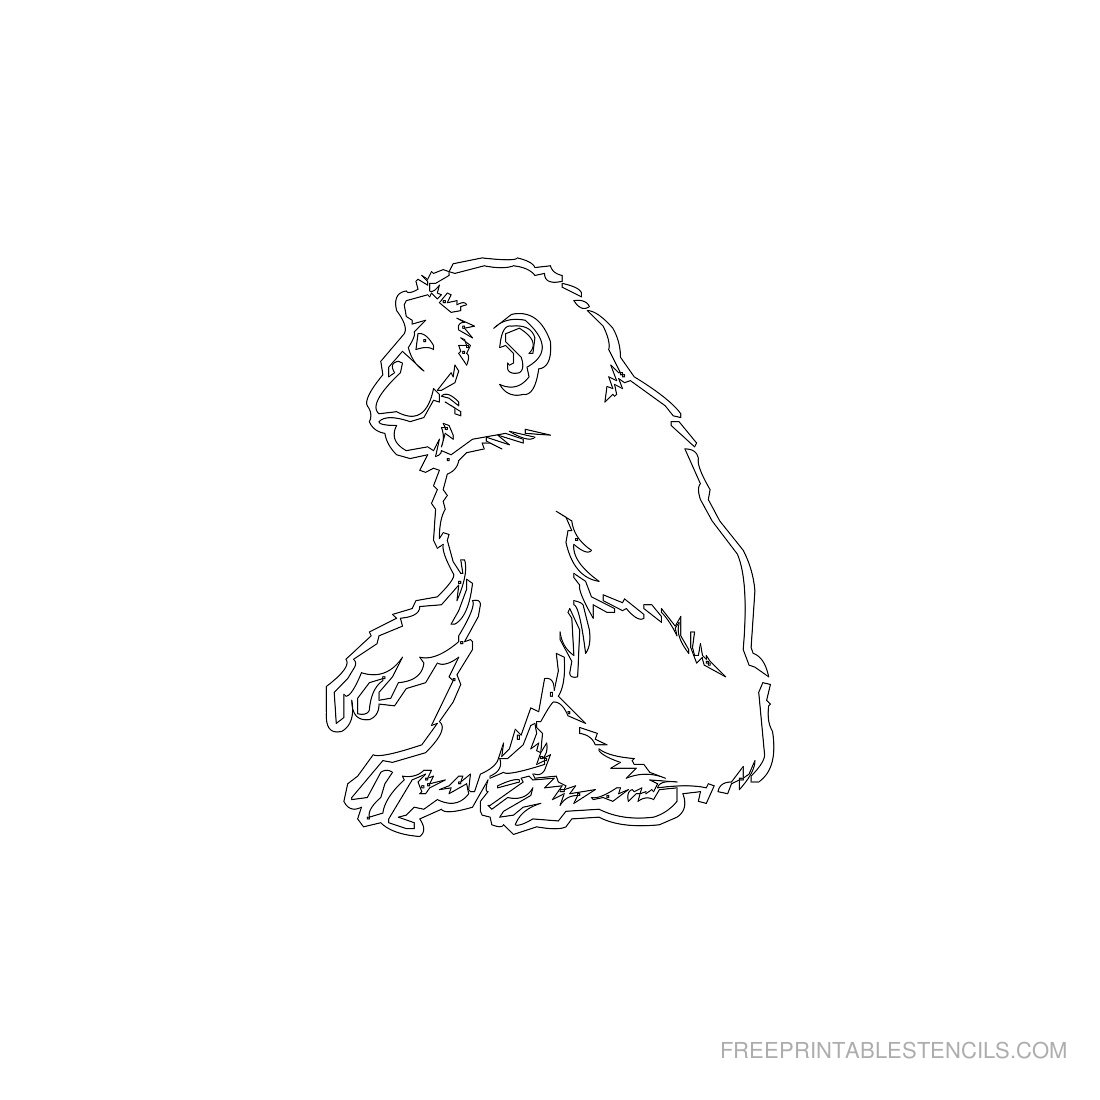 Free Printable Animal Stencil Monkey